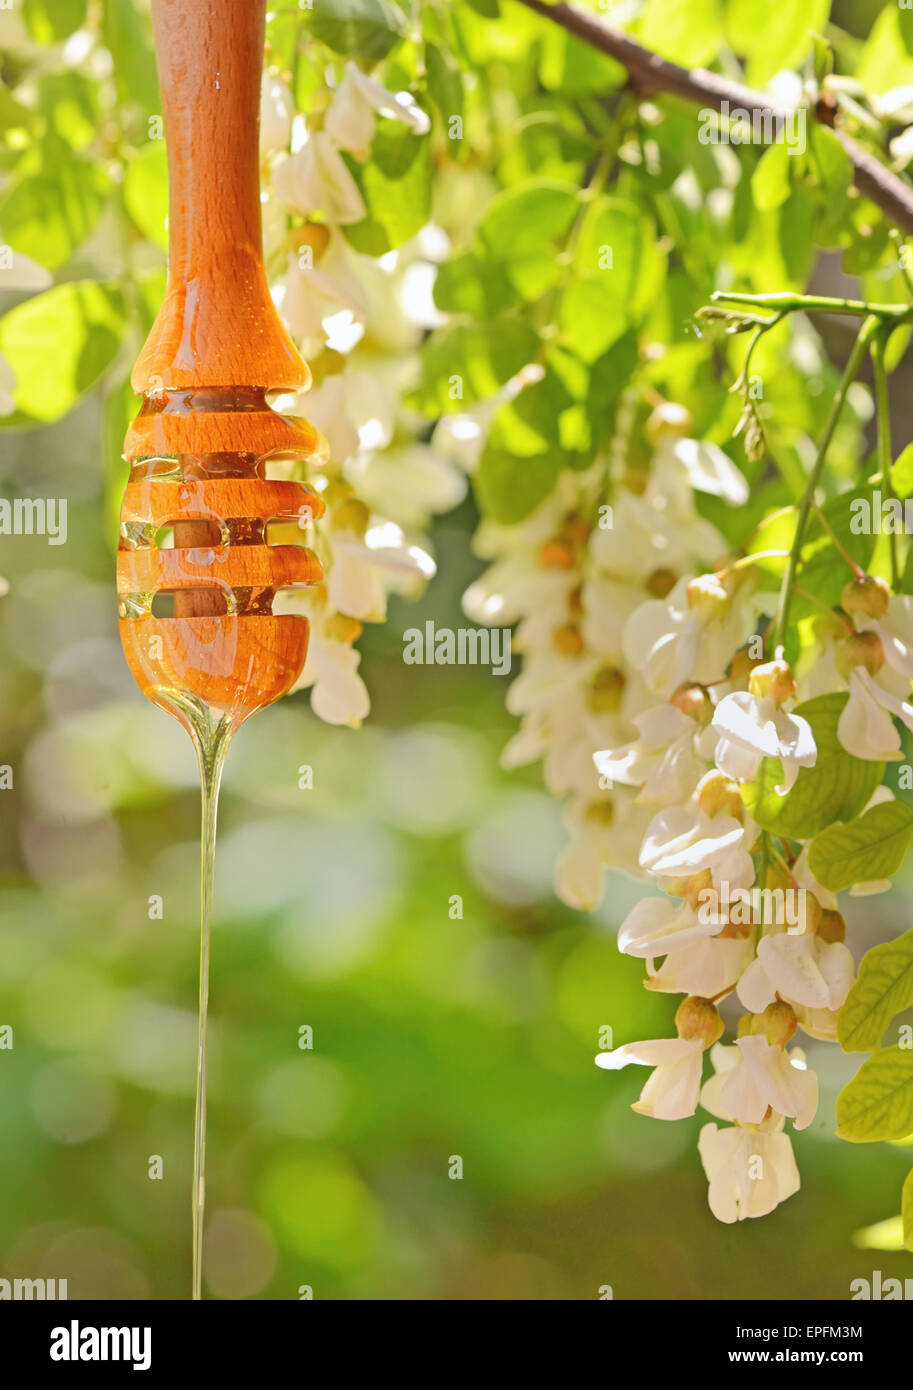 acacia honey and dripper in nature - Stock Image